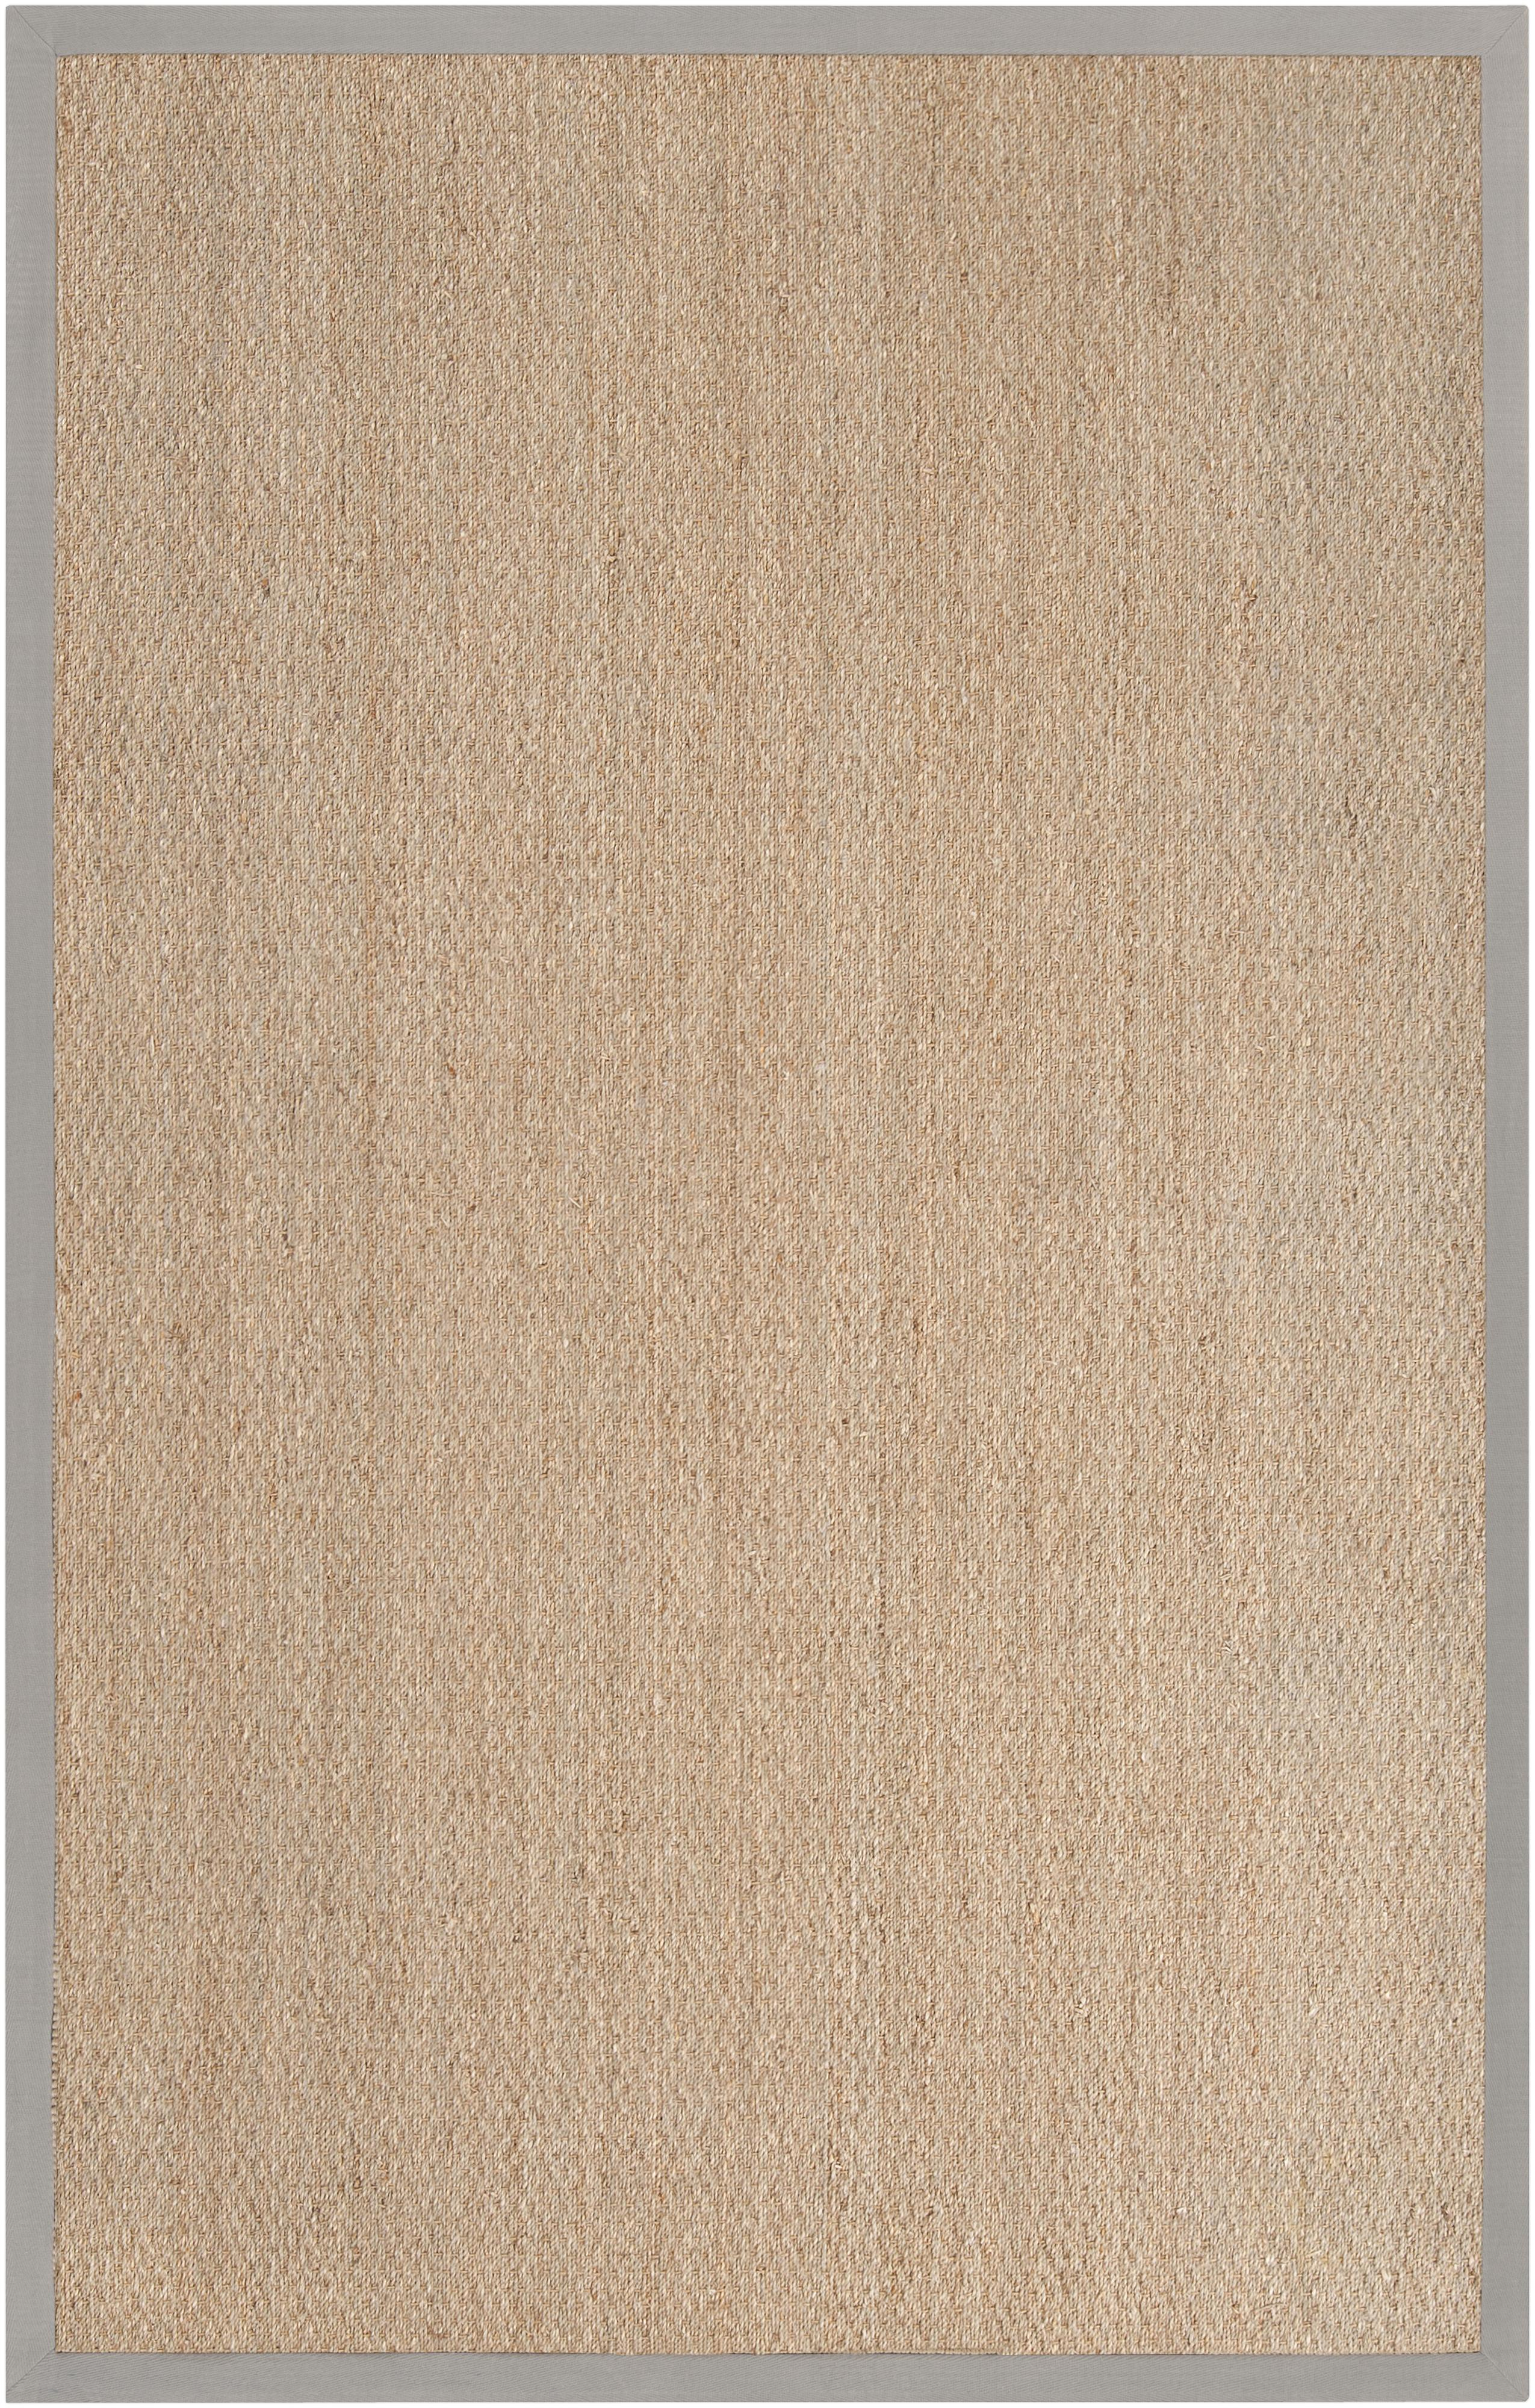 Surya Rugs Village 9' x 13' - Item Number: VIL6011-913